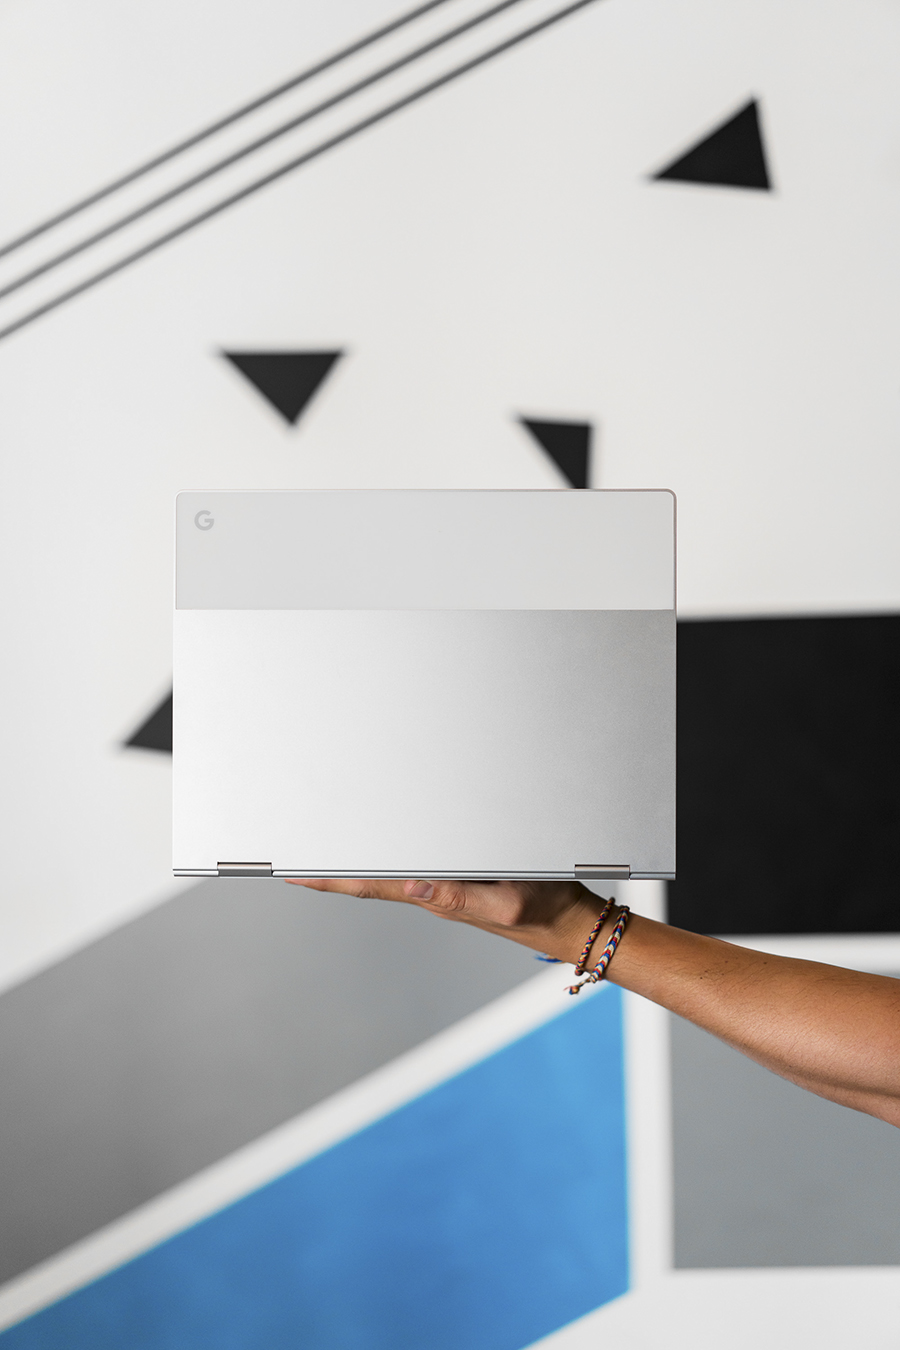 Google Pixelbook_101-Edit.jpg